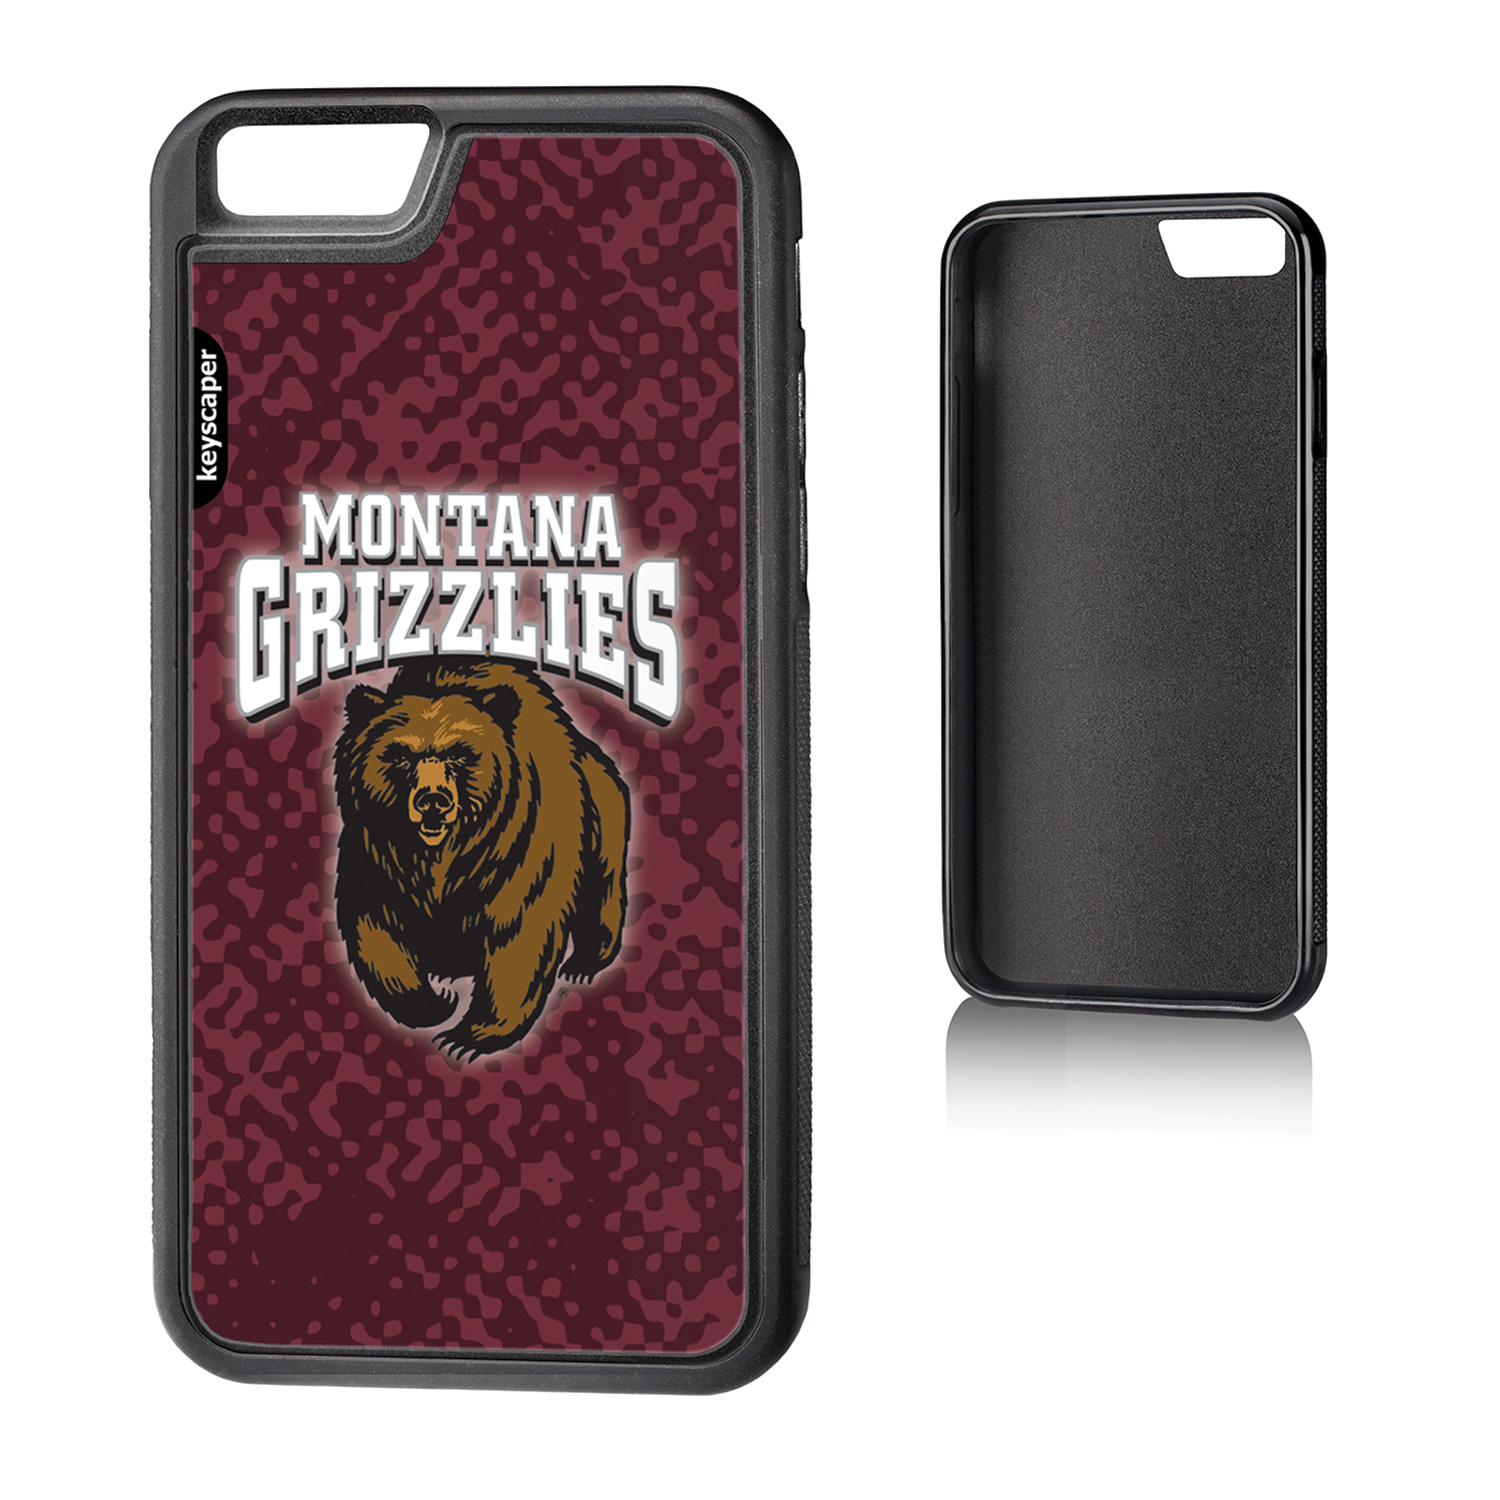 Montana Grizzlies iPhone 6 (4.7 inch) Bumper Case